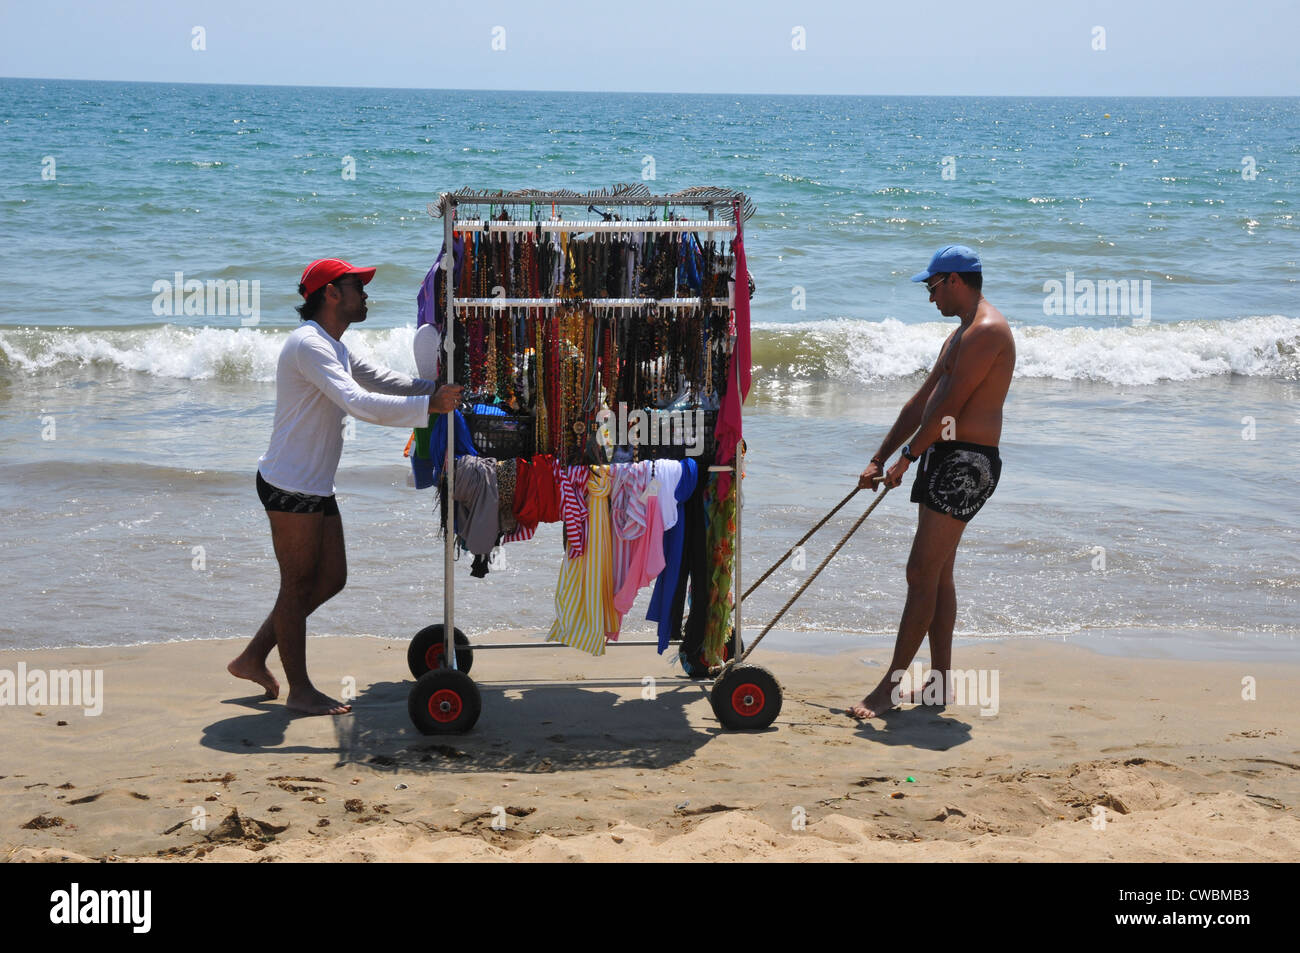 Two men moving beach cart ,displaying various colorful items for sale, along sandy beach, next to calm sea, Punta - Stock Image